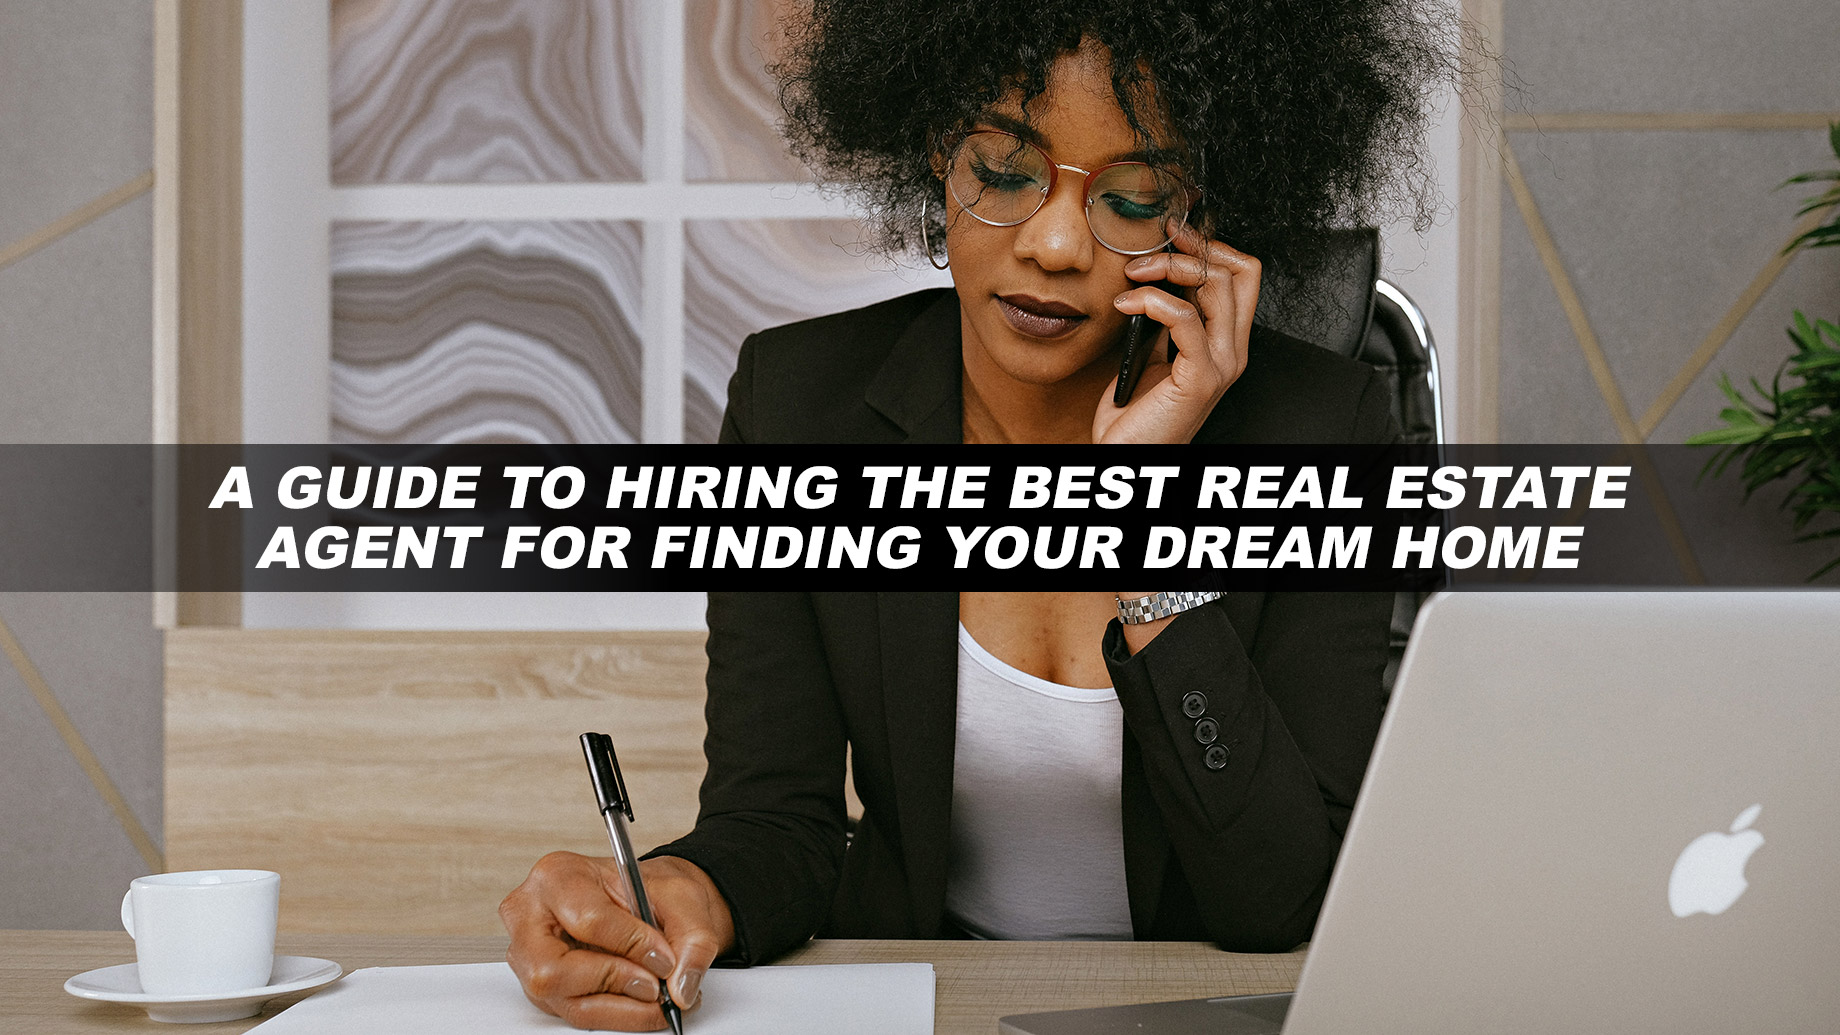 A Guide to Hiring the Best Real Estate Agent for Finding Your Dream Home